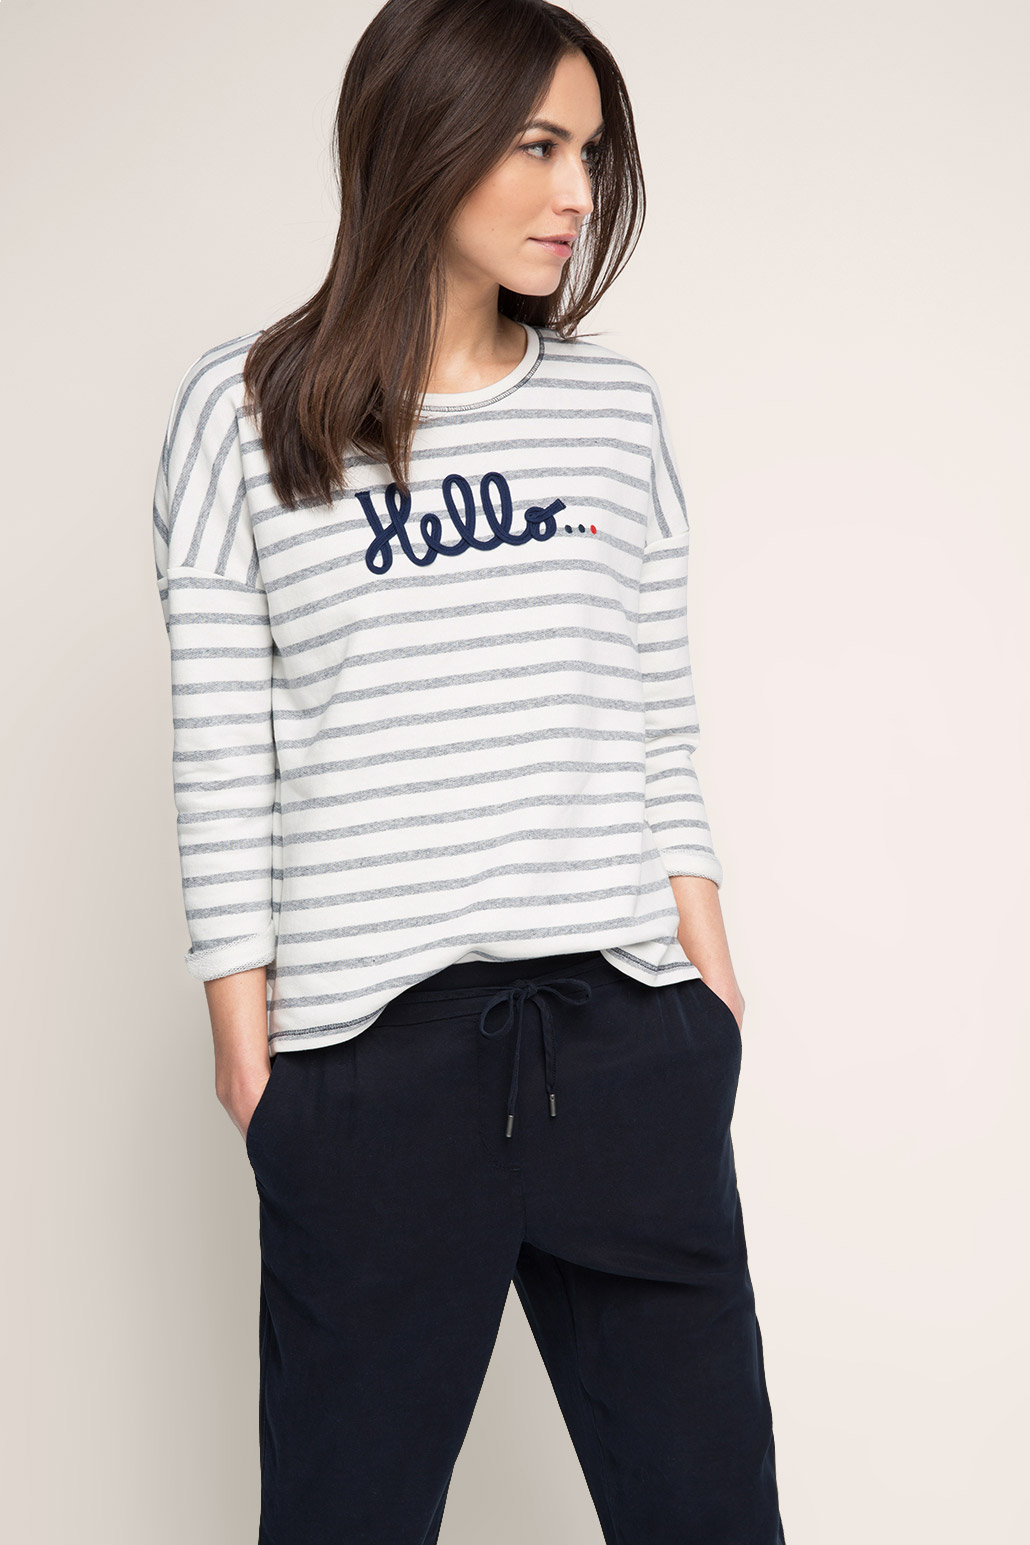 Esprit-Striped-sweatshirt-in-cotton